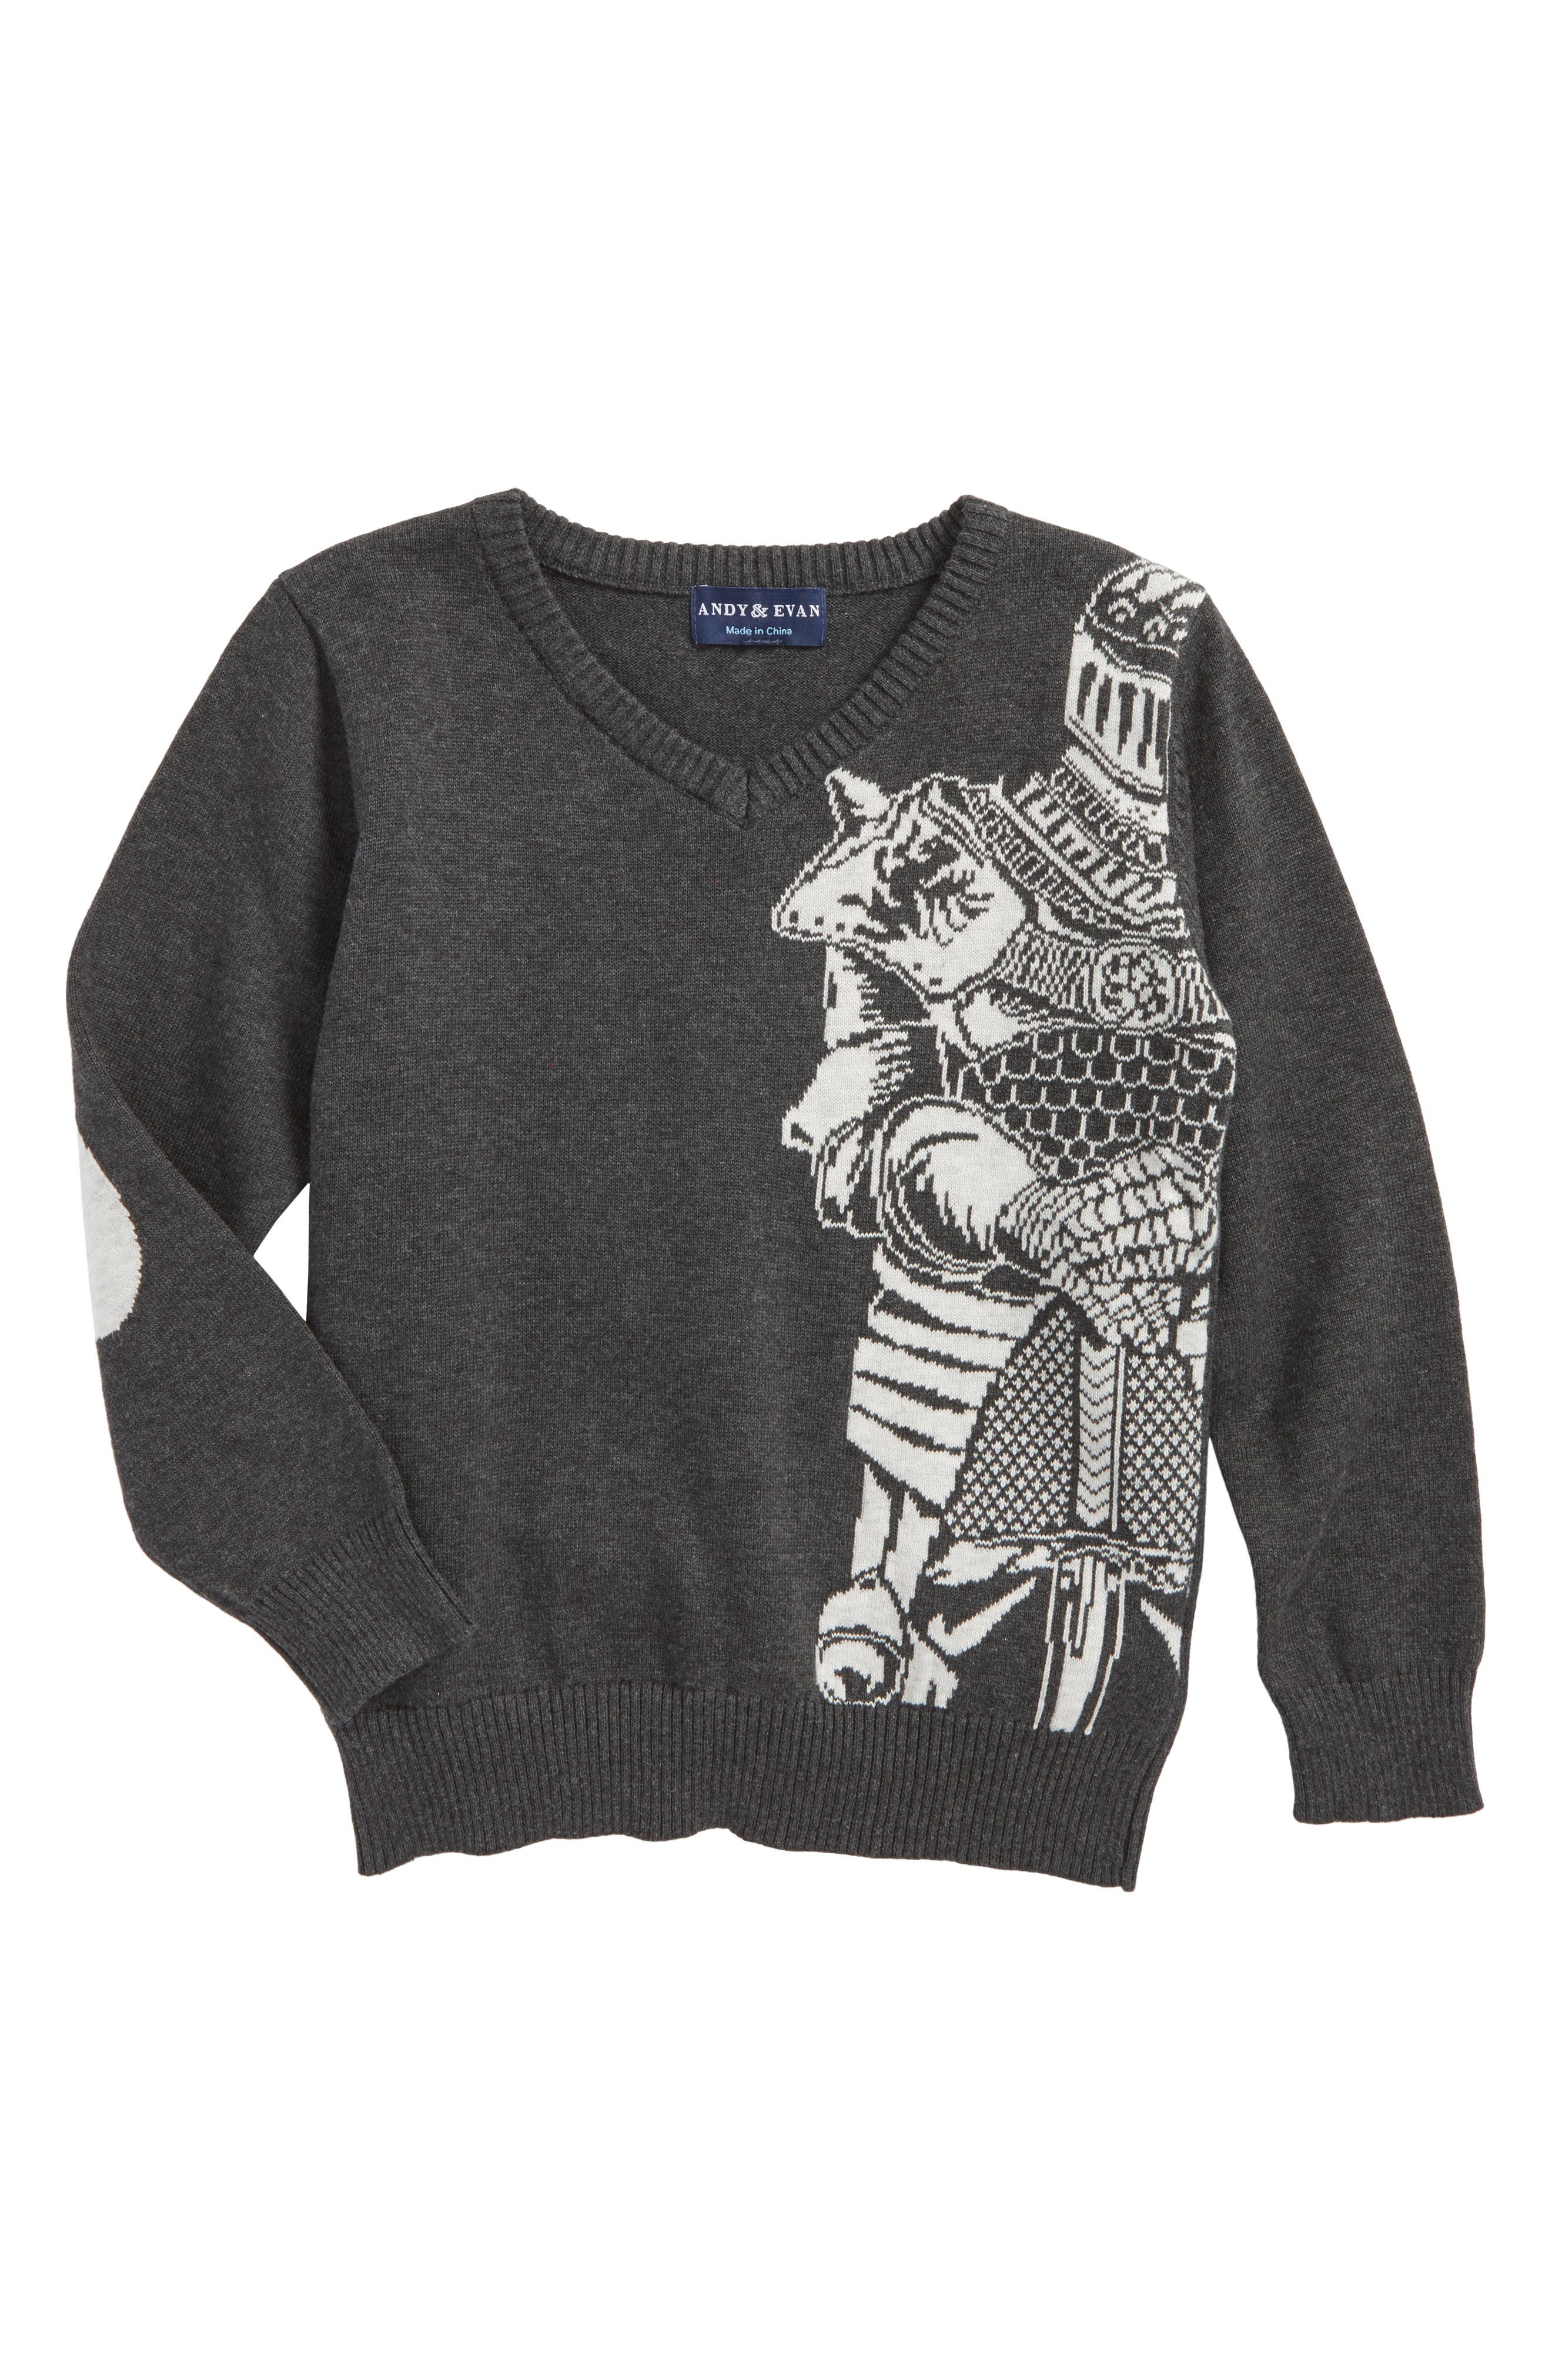 Andy & Evan Knight Intarsia Sweater (Toddler Boys & Little Boys)